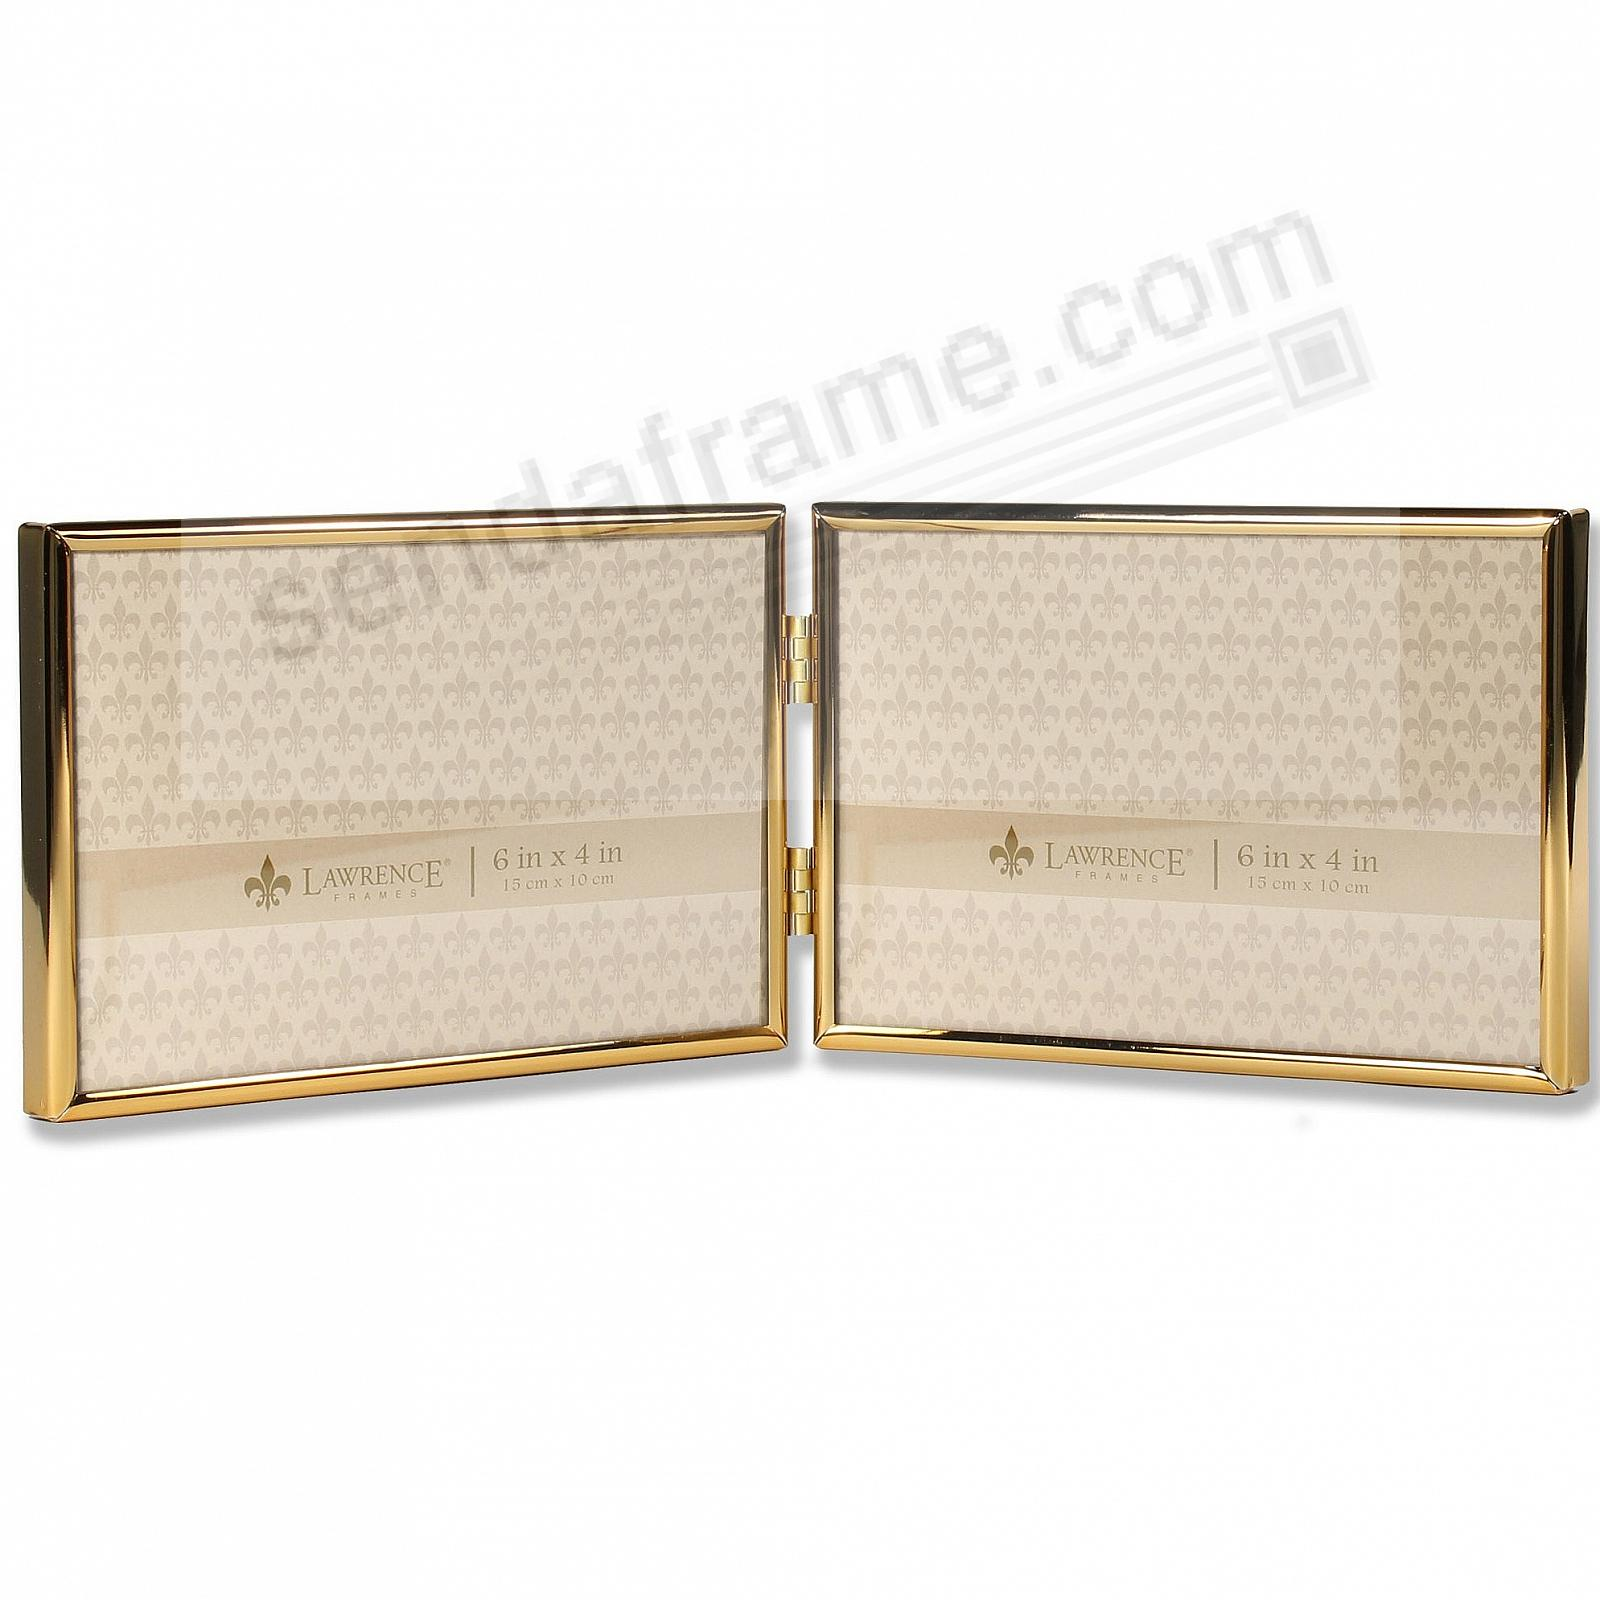 Polished SIMPLY GOLD double hinged 6x4 frame by Lawrence®